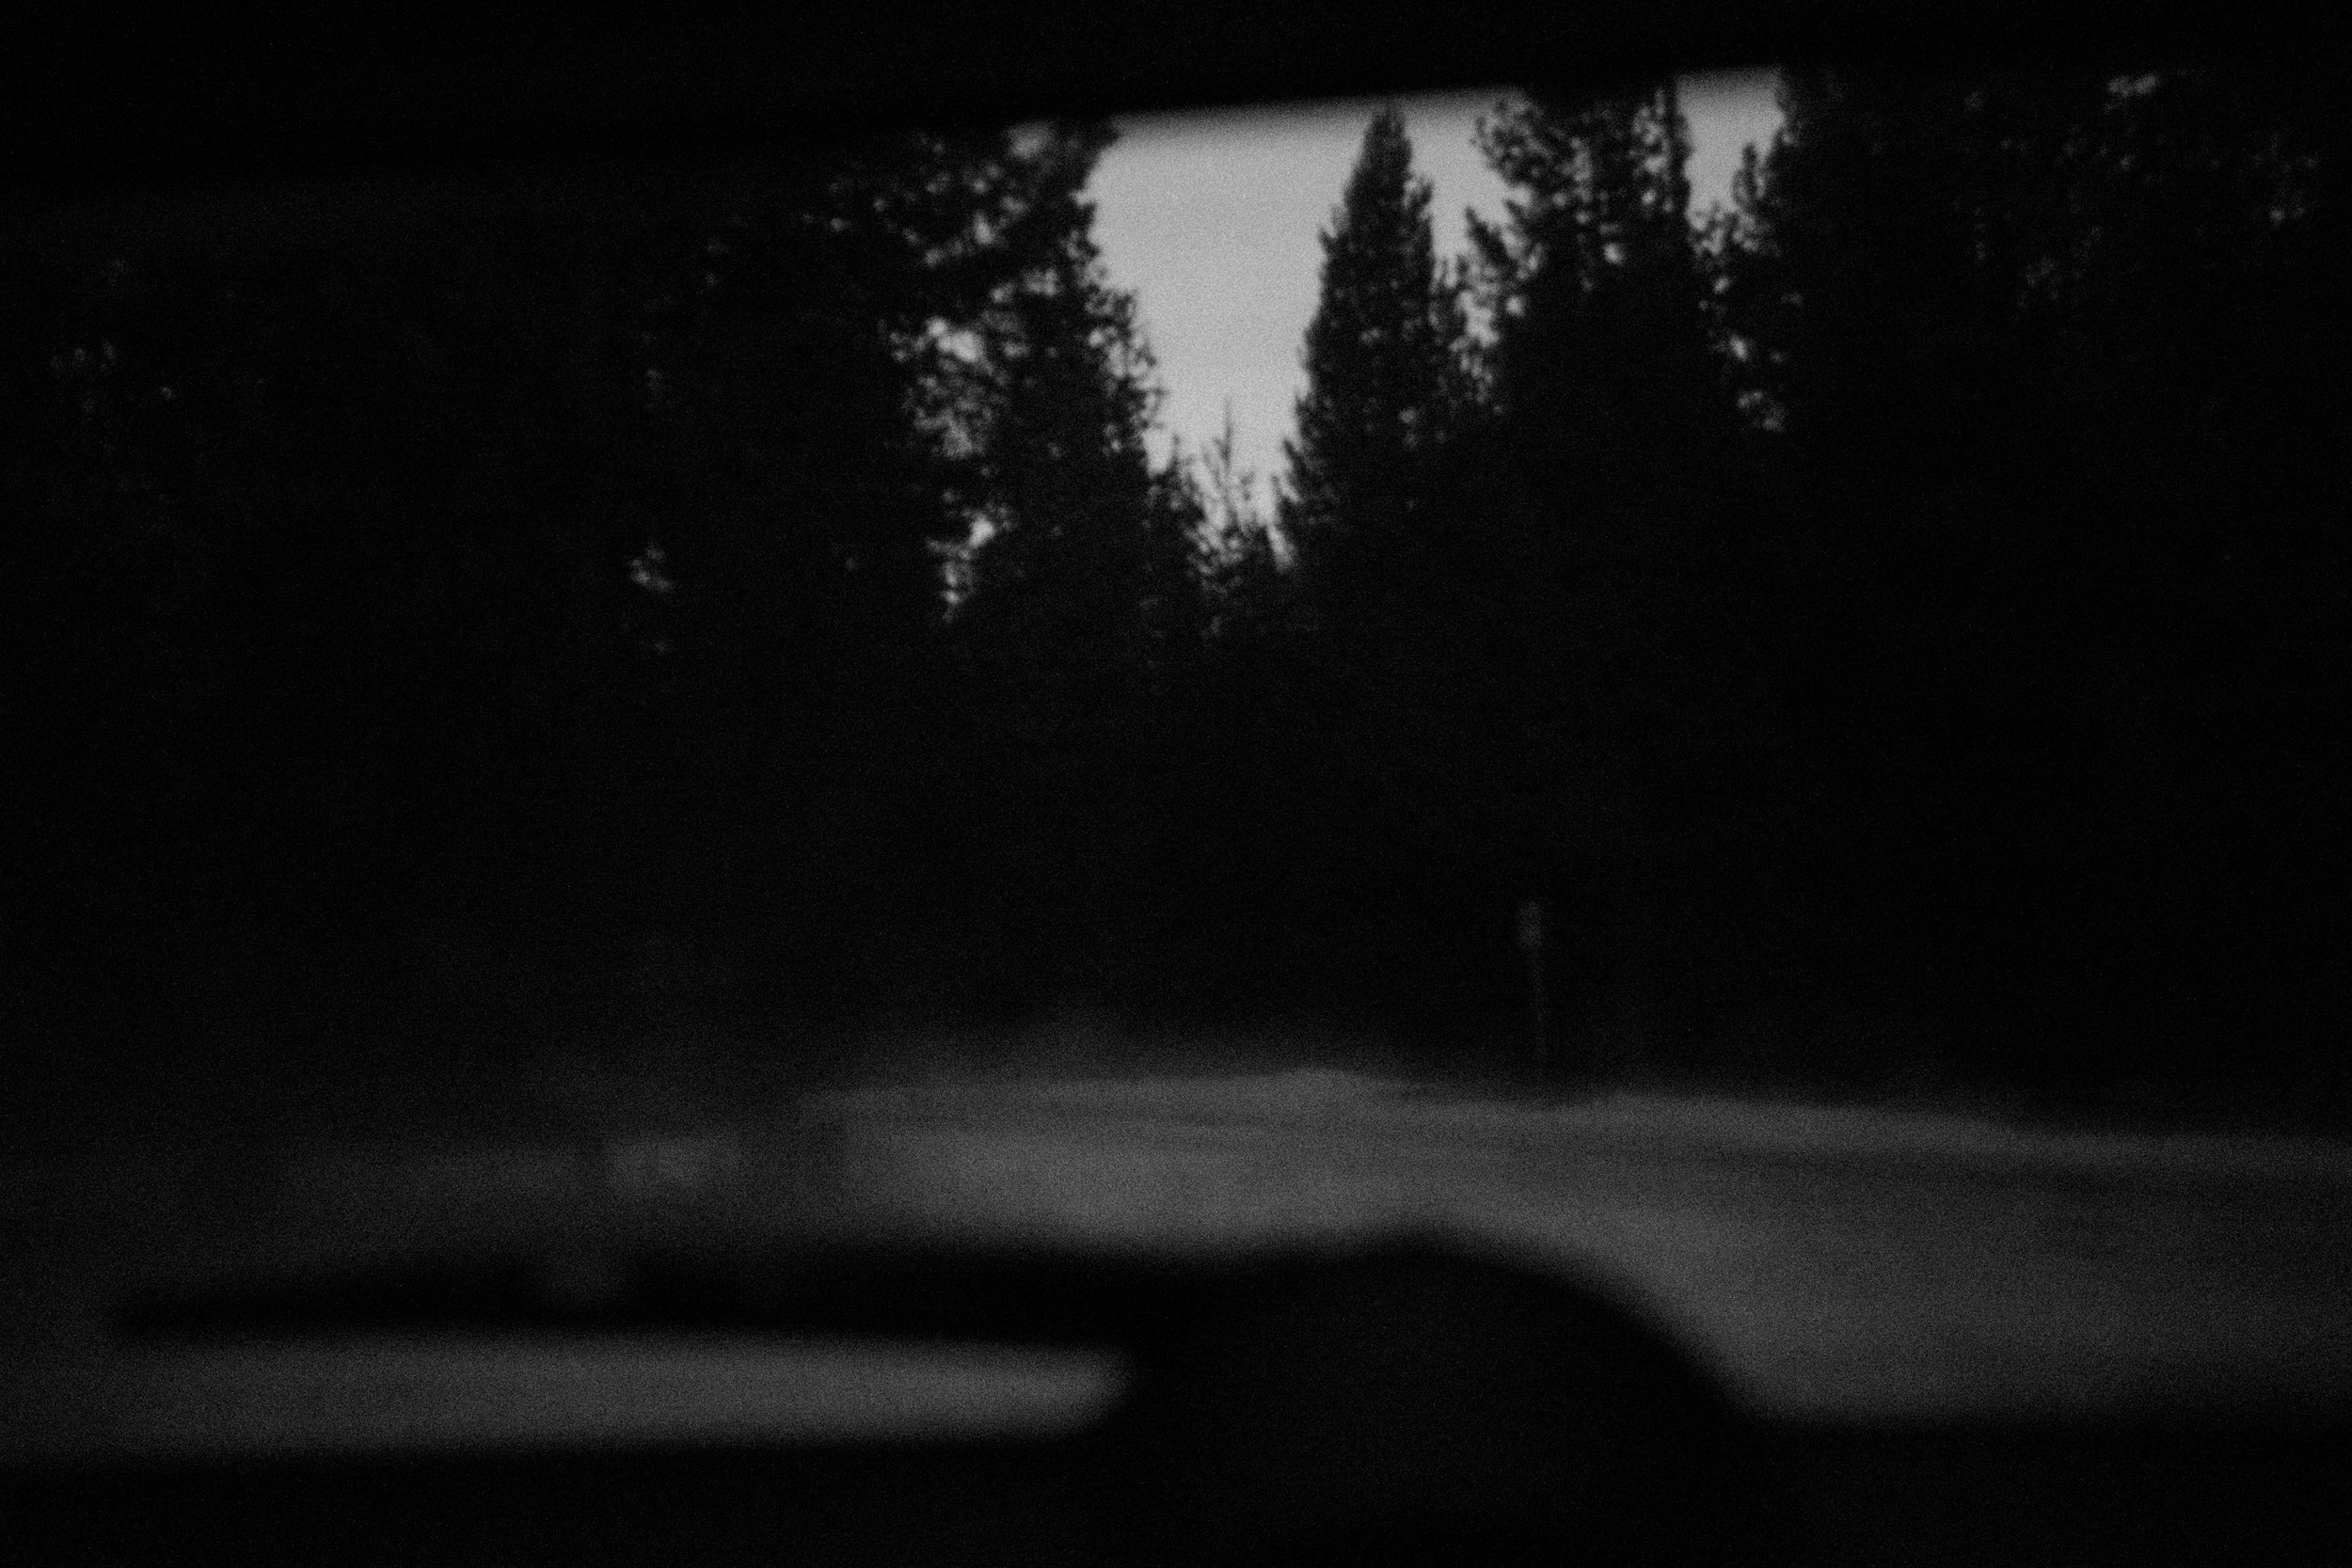 View from the car, 6am